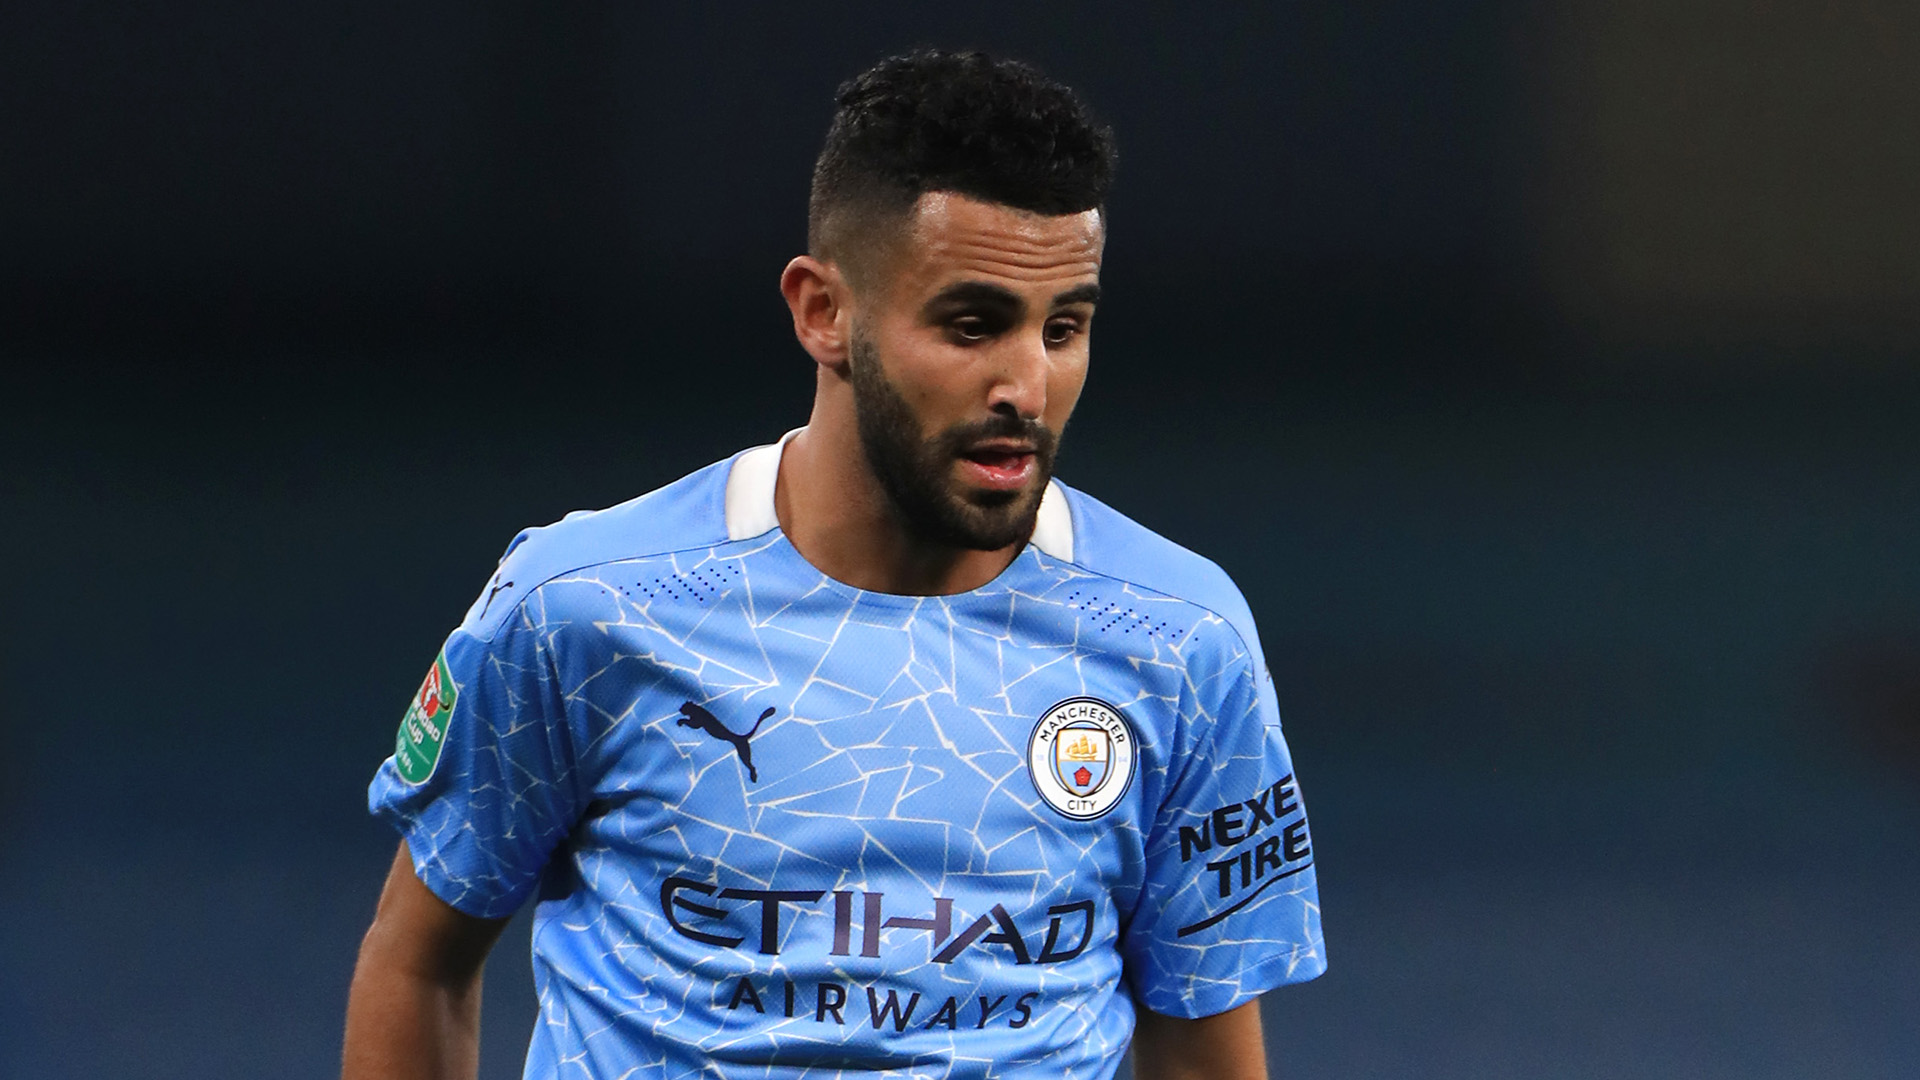 Man City Weren t Good Enough To Win The Title Consistency Key To Catching Liverpool Says Mahrez Goal com